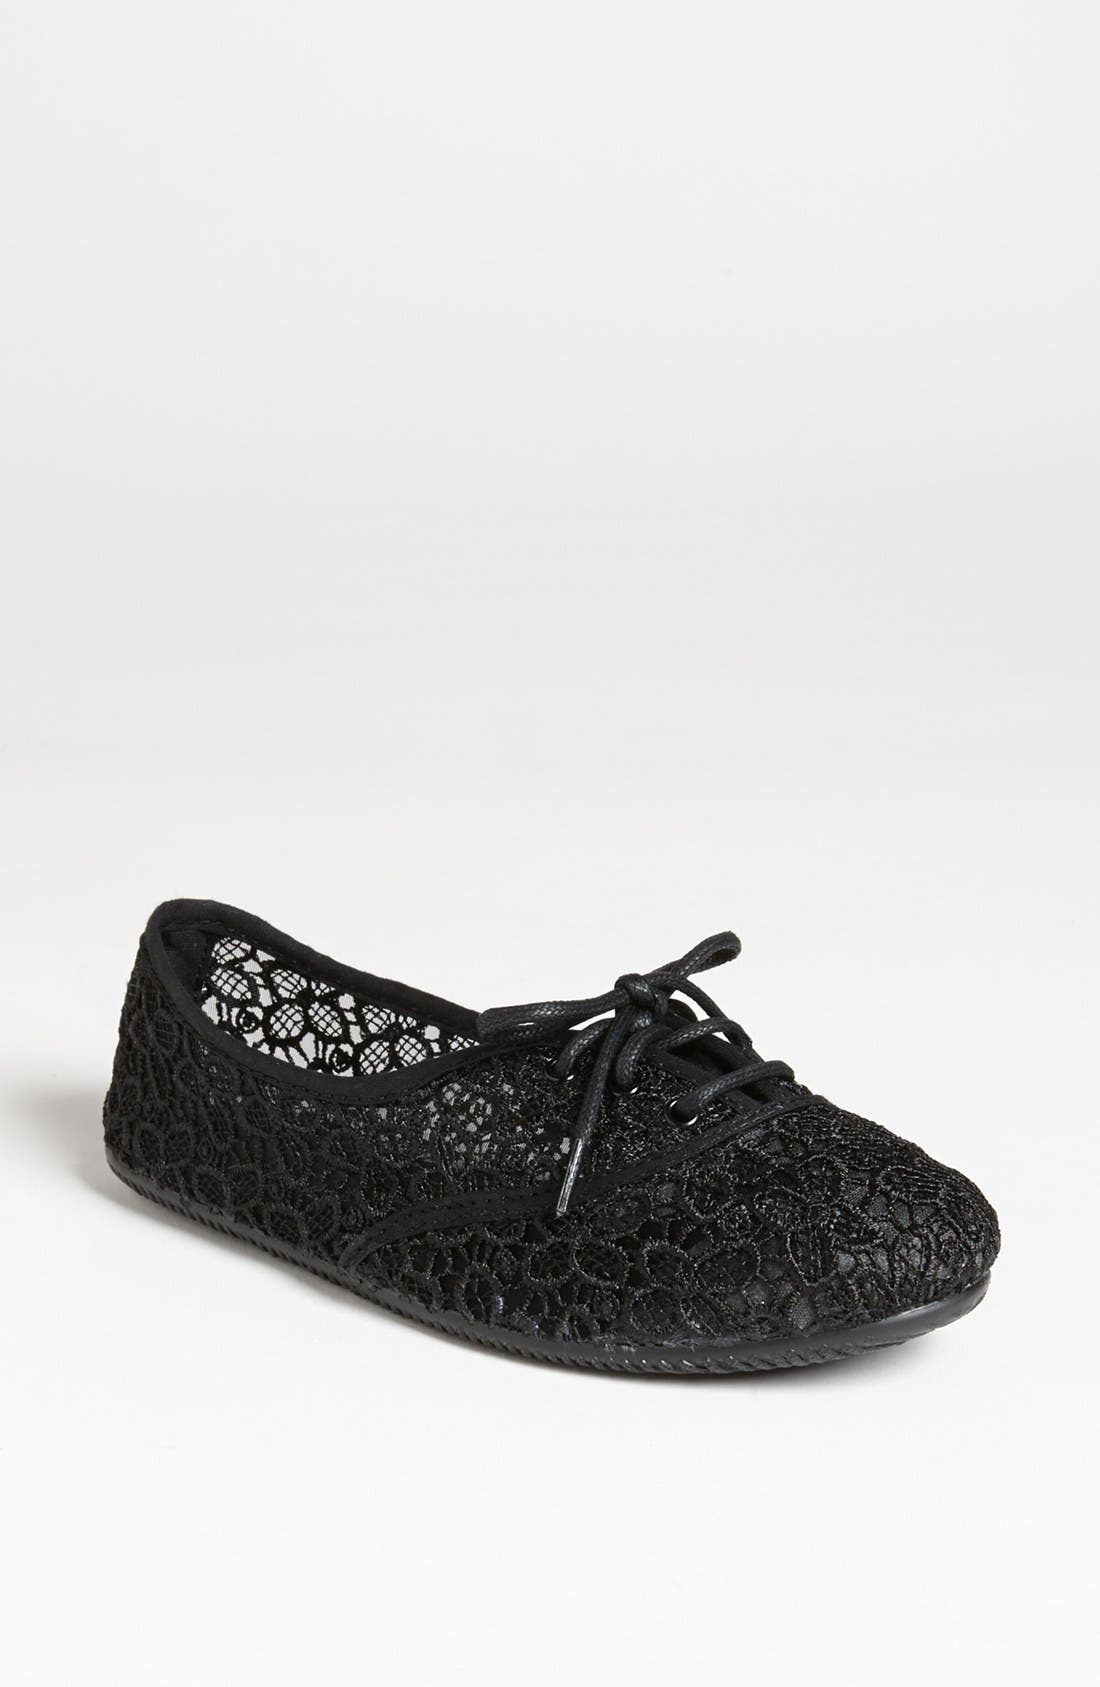 Alternate Image 1 Selected - Topshop 'Twister' Flat